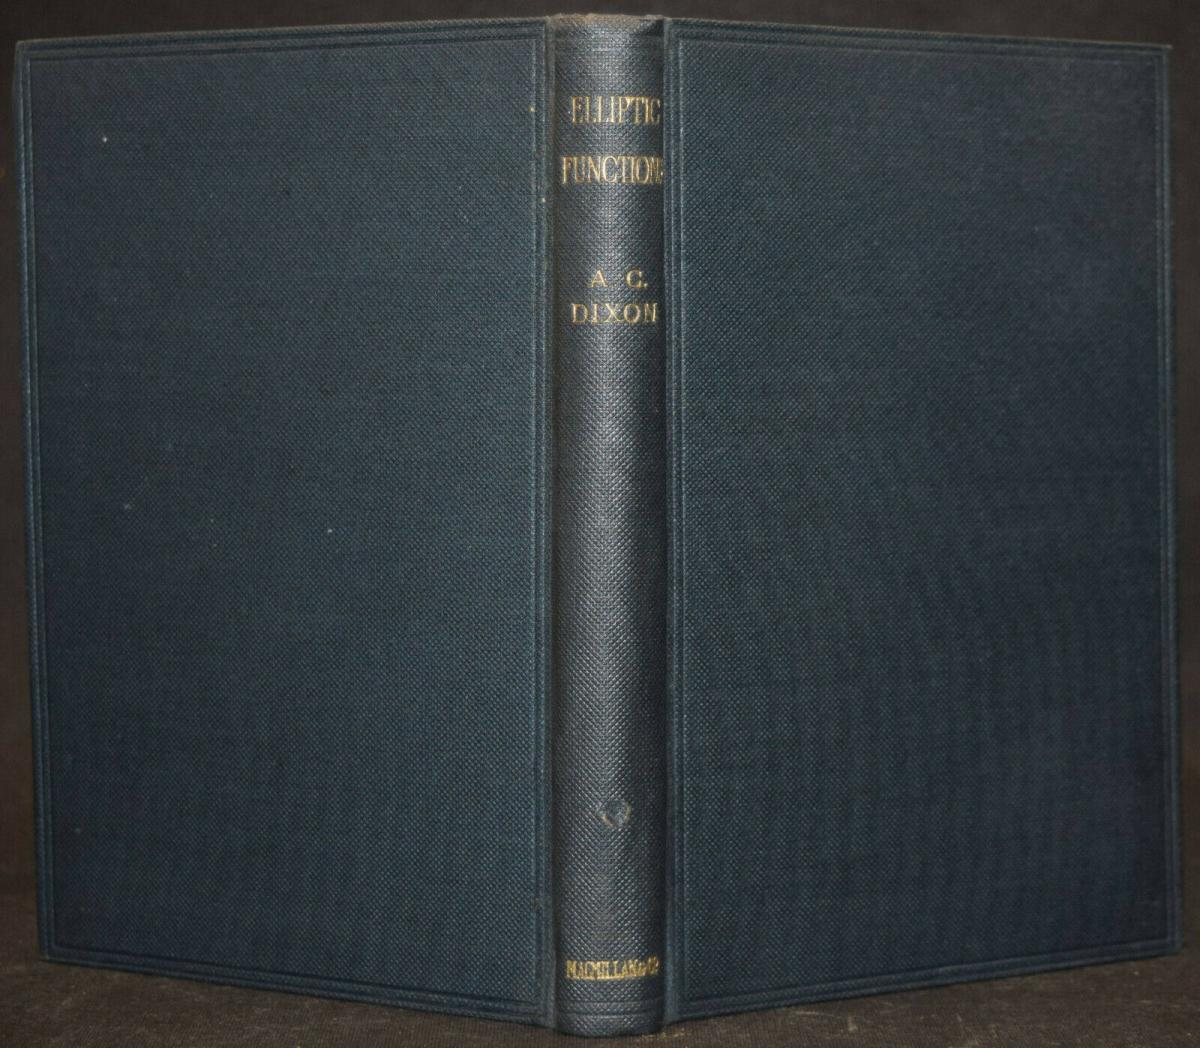 THE ELEMENTARY PROPERTIES OF THE ELLIPTIC FUNCTIONS - ALFRED DIXON - 1894 1